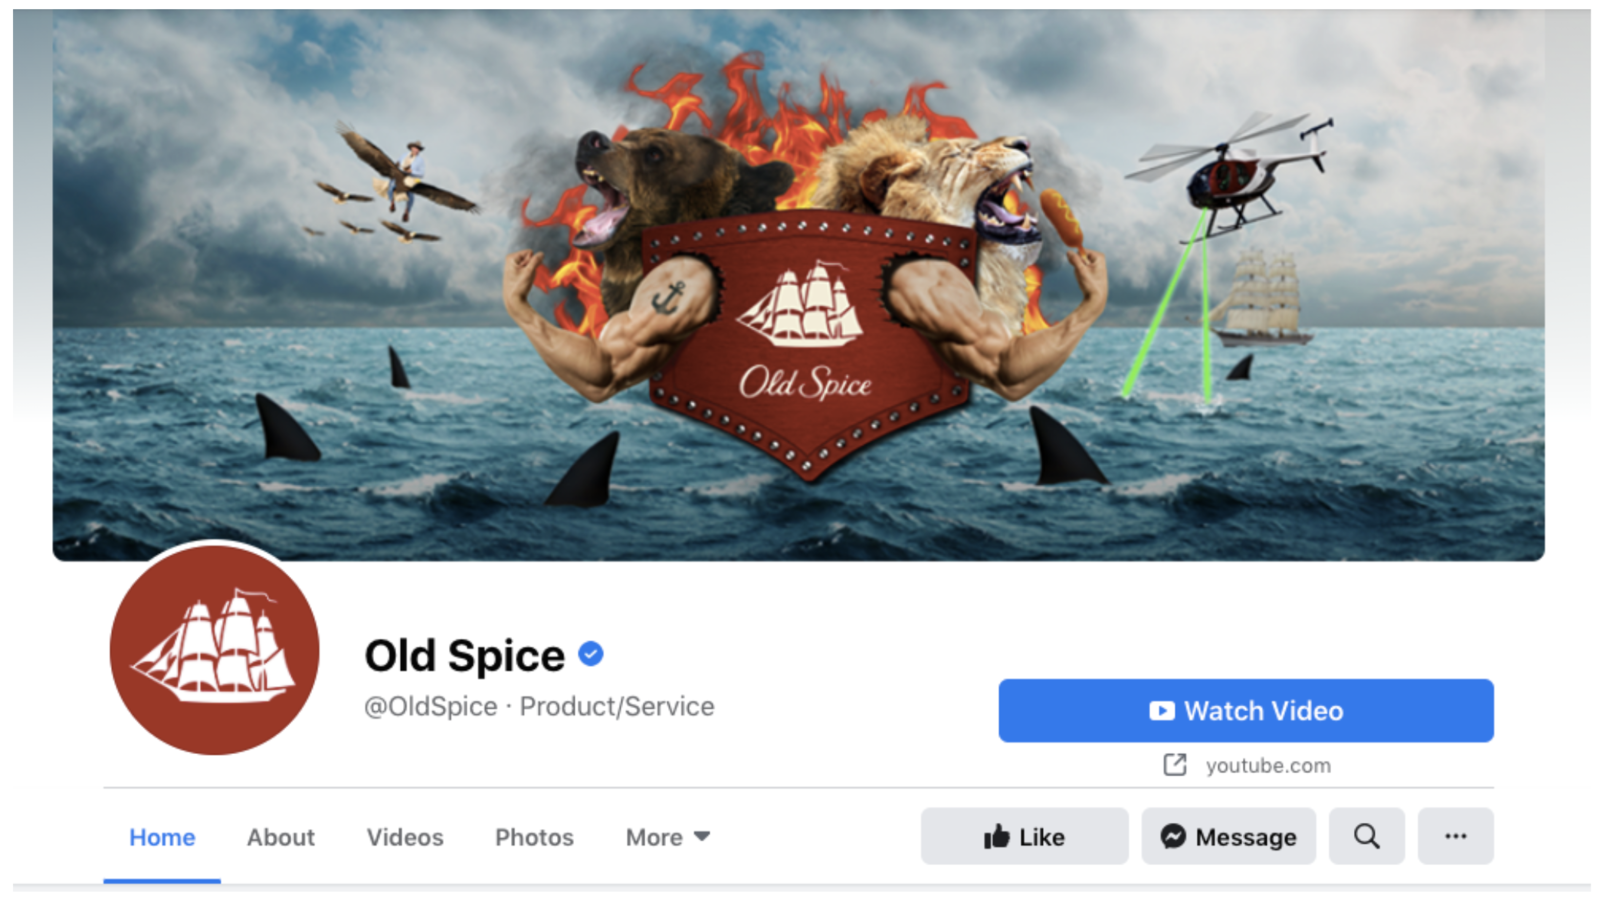 Old Spice Facebook Cover Image Example